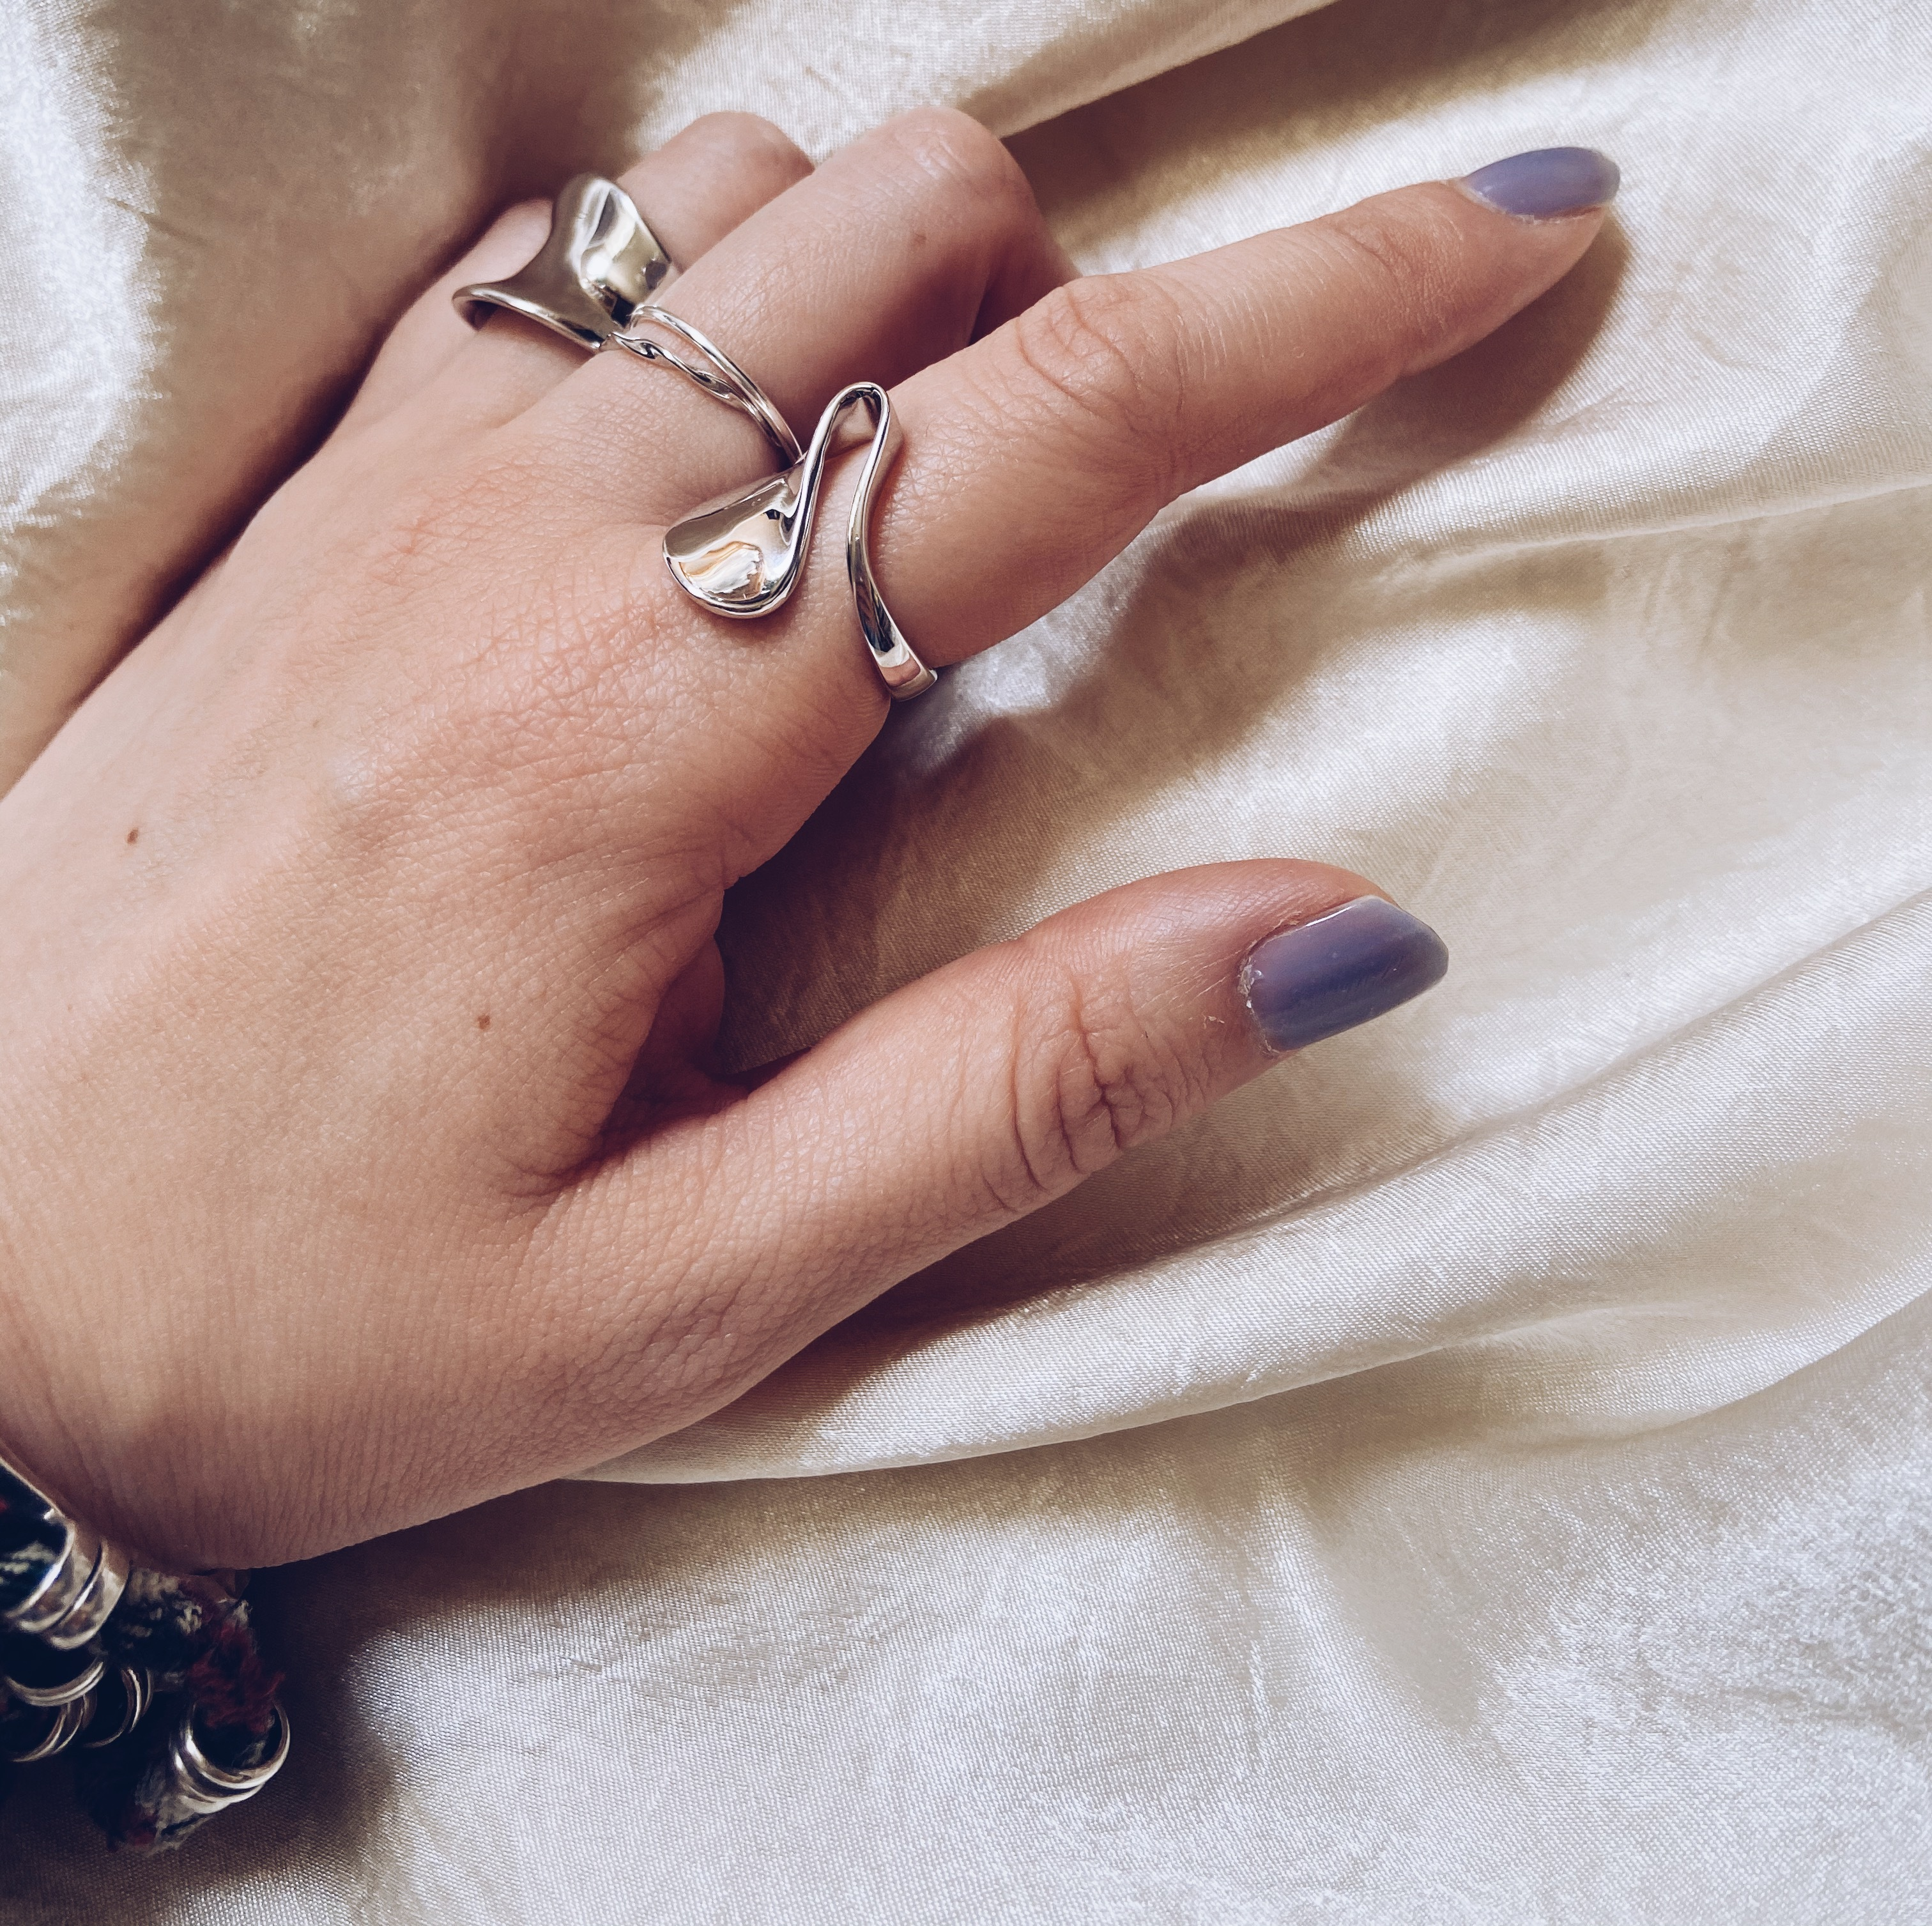 nejineji ring